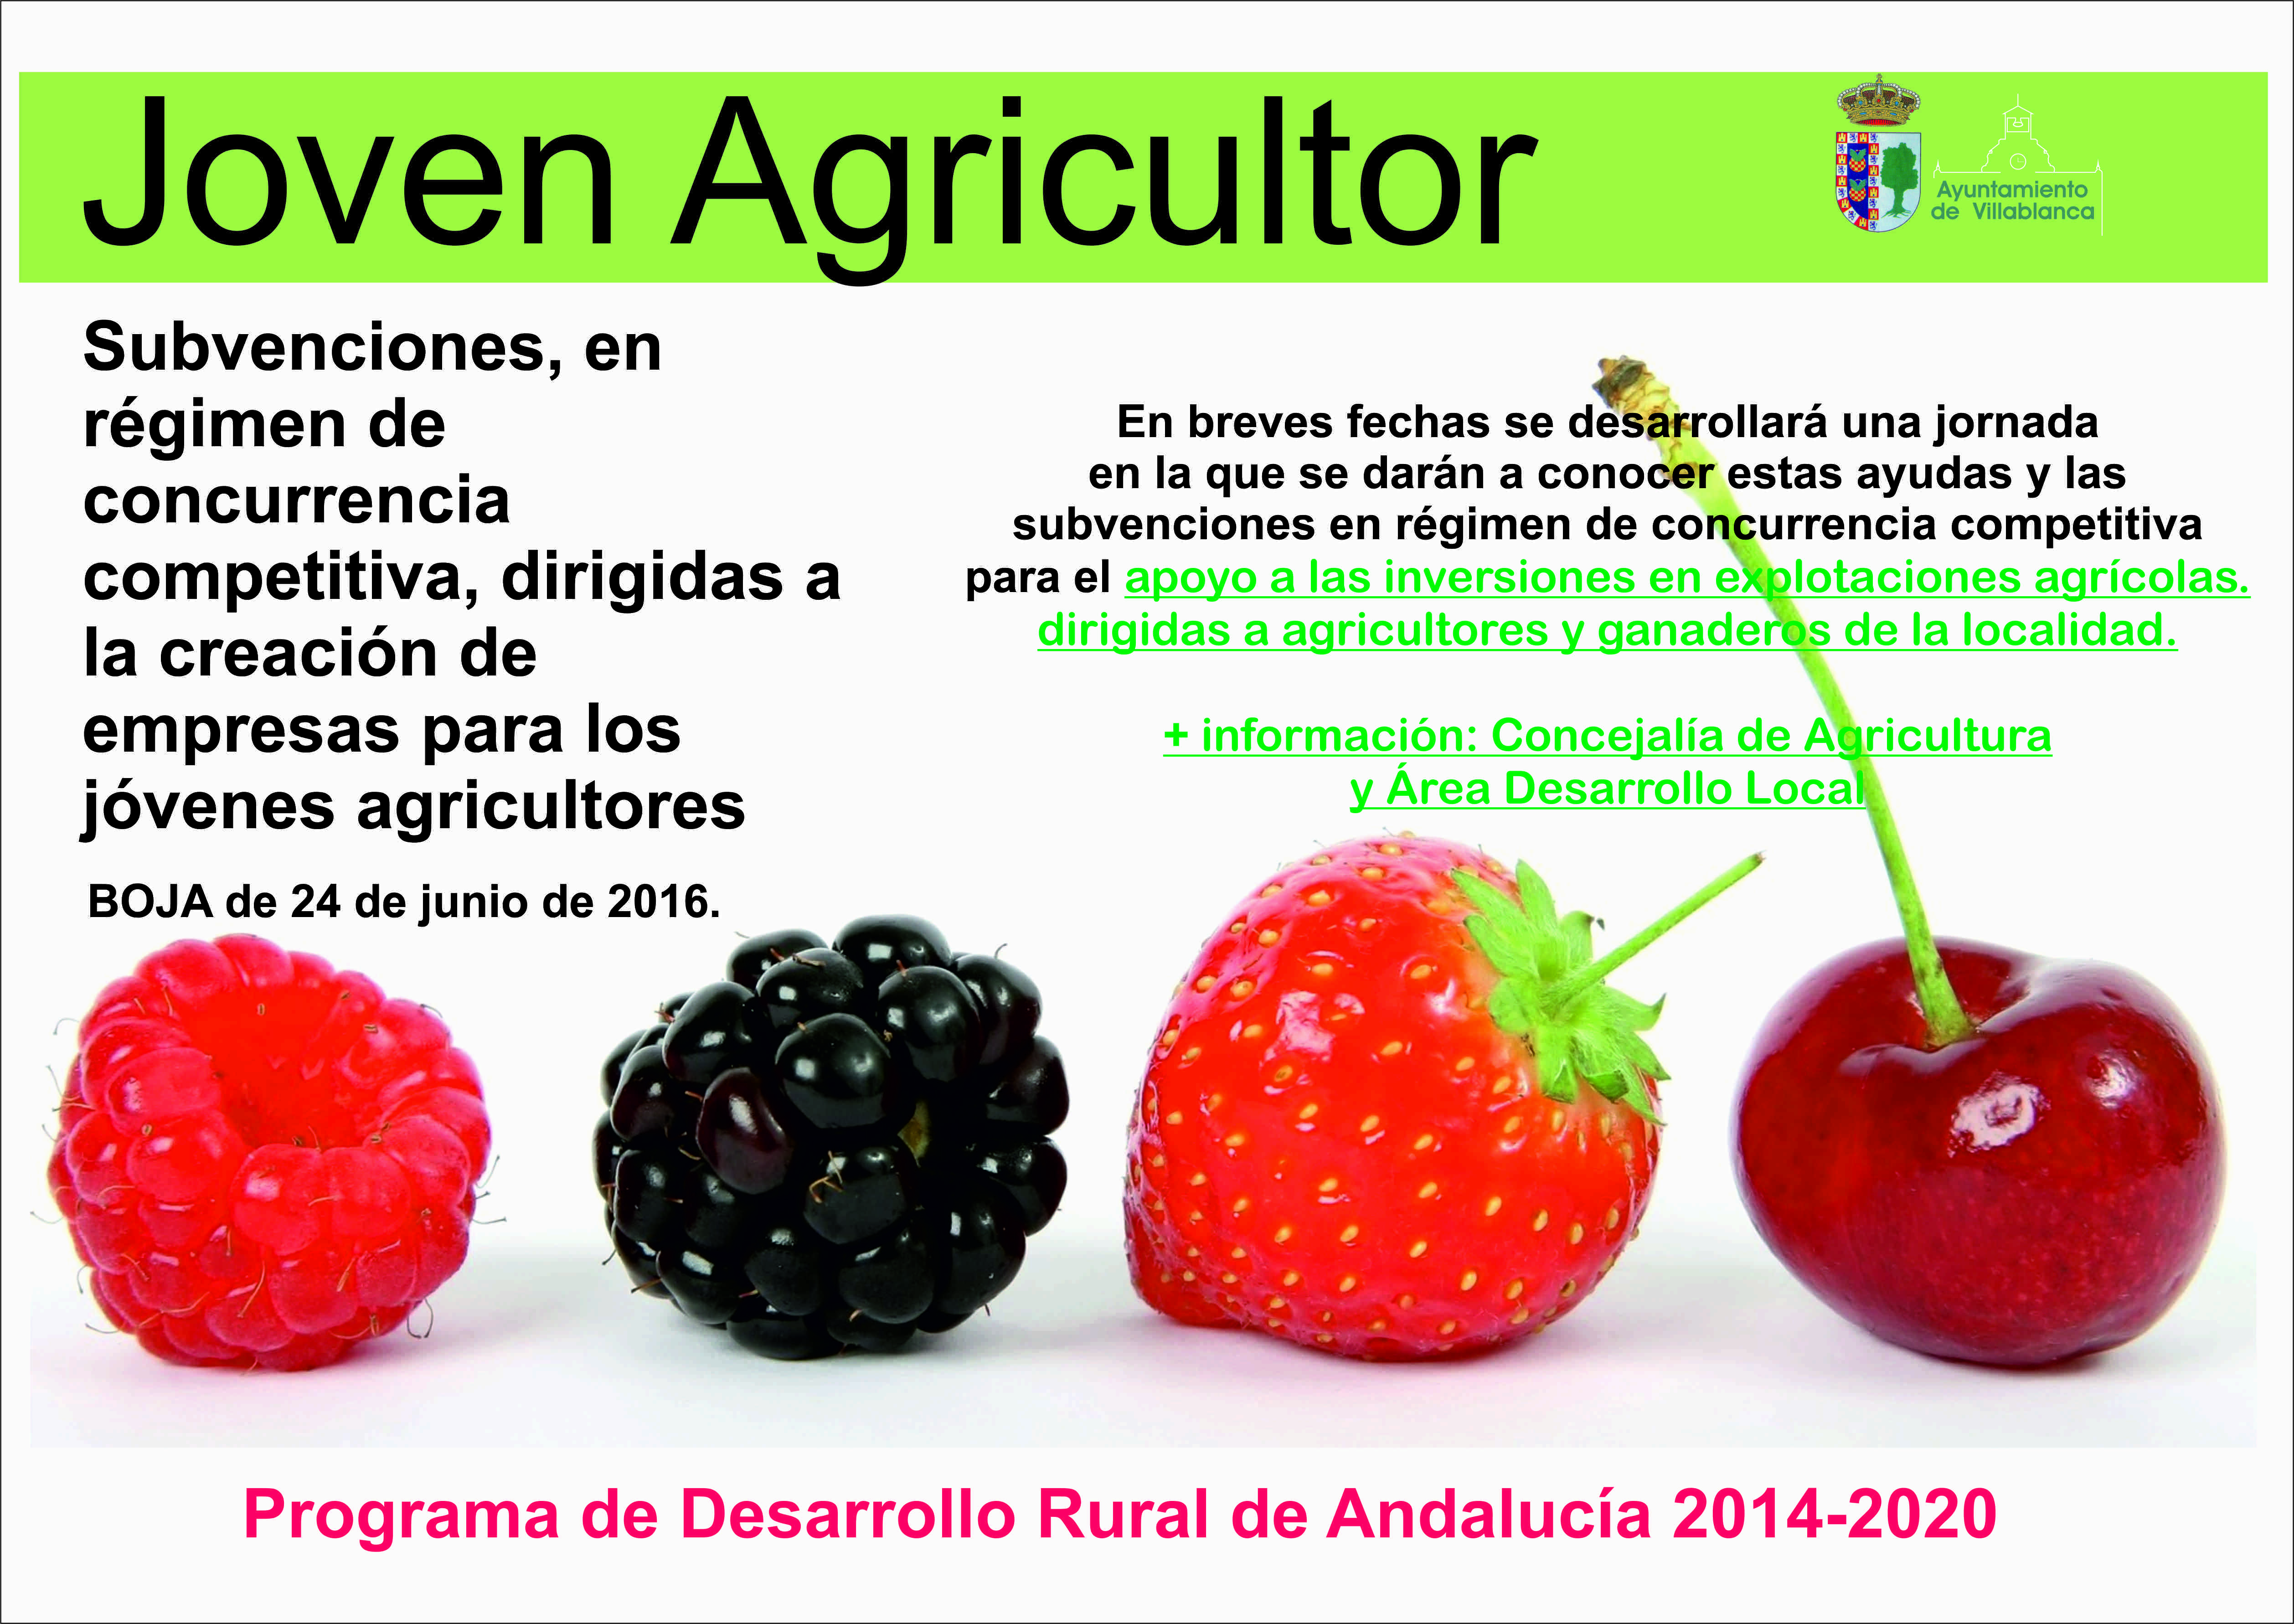 joven agricultor